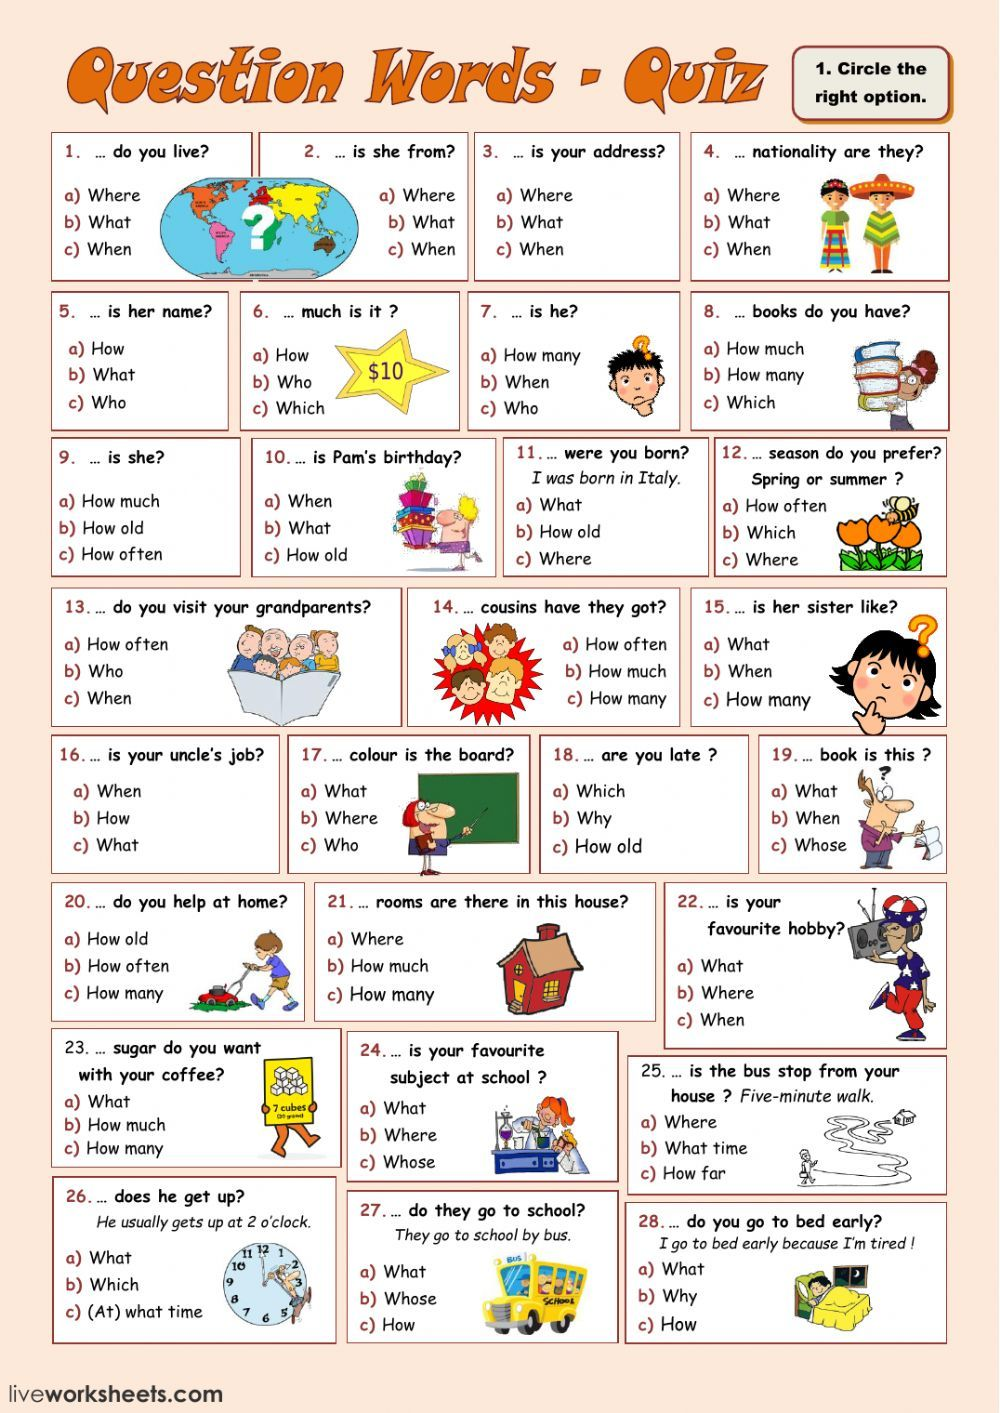 Question Words online and pdf exercise. You can do the